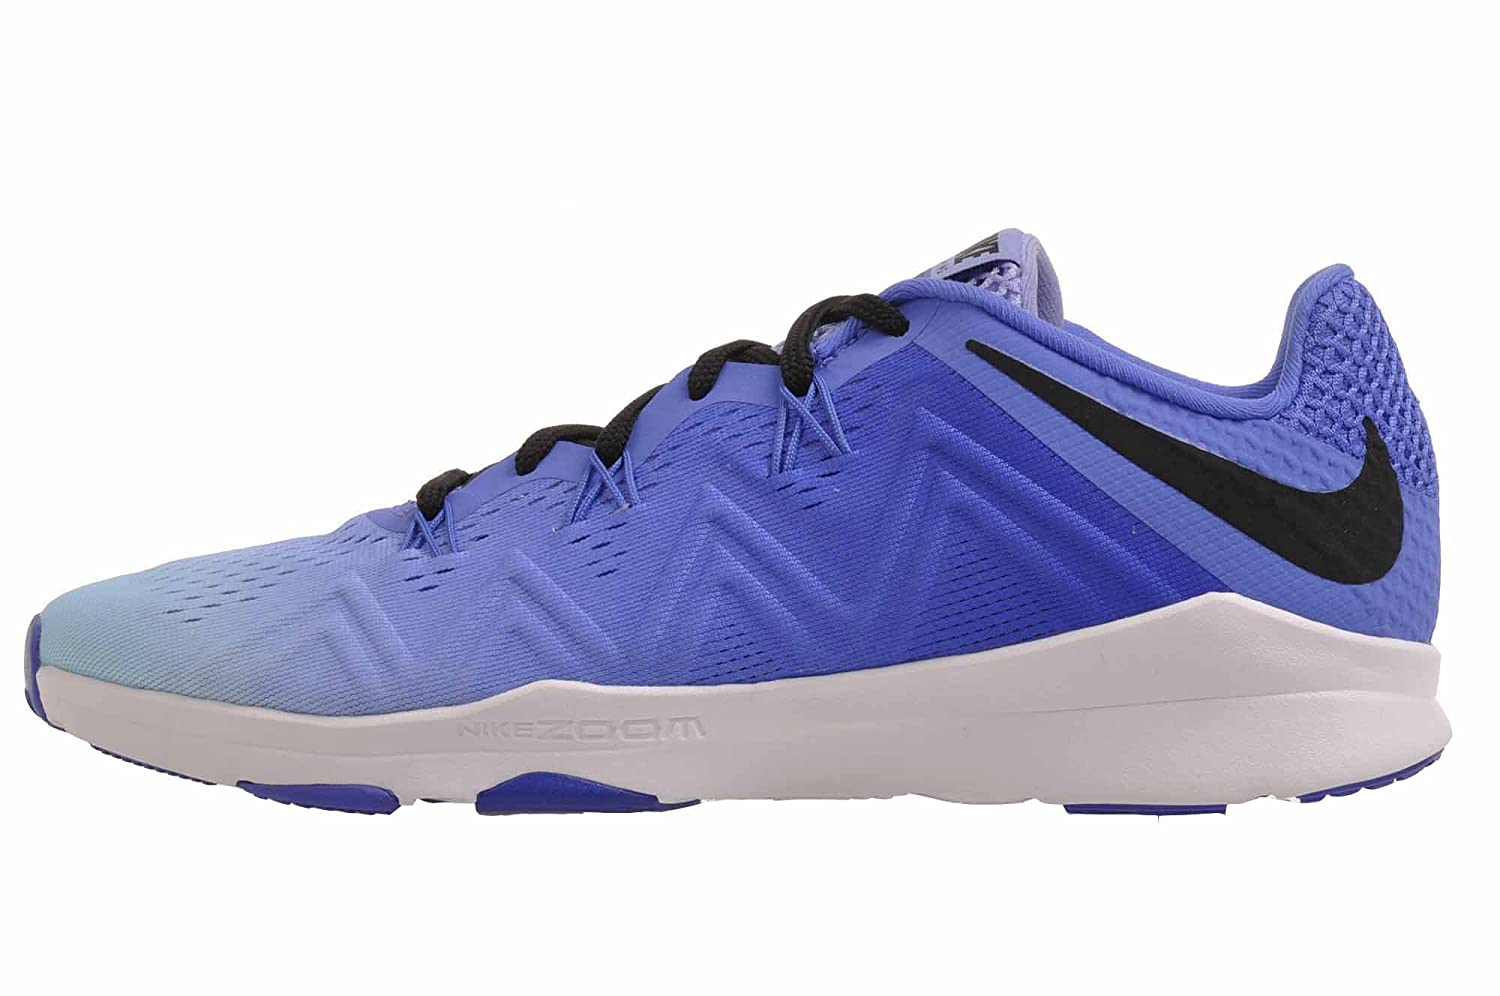 NIKE Women's Zoom Condition TR Cross Trainer B005AOP14Q 8 B(M) US|Medium Blue/Black/Light Thistle